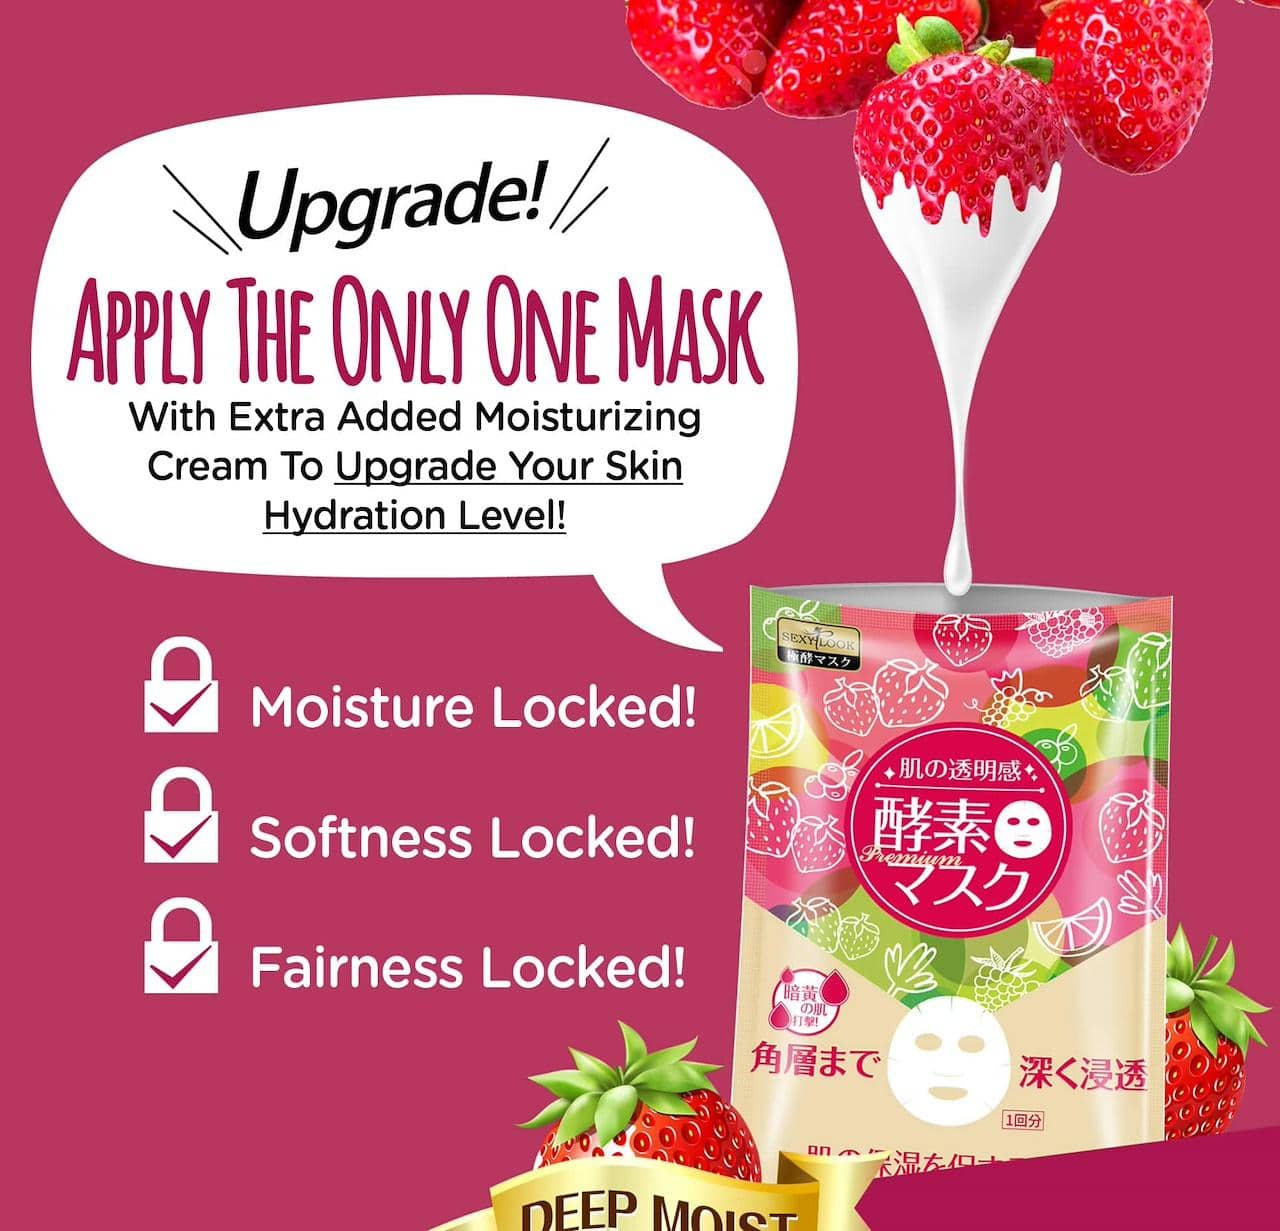 Enzyme Intensive Anti-acne Mask - Benefits